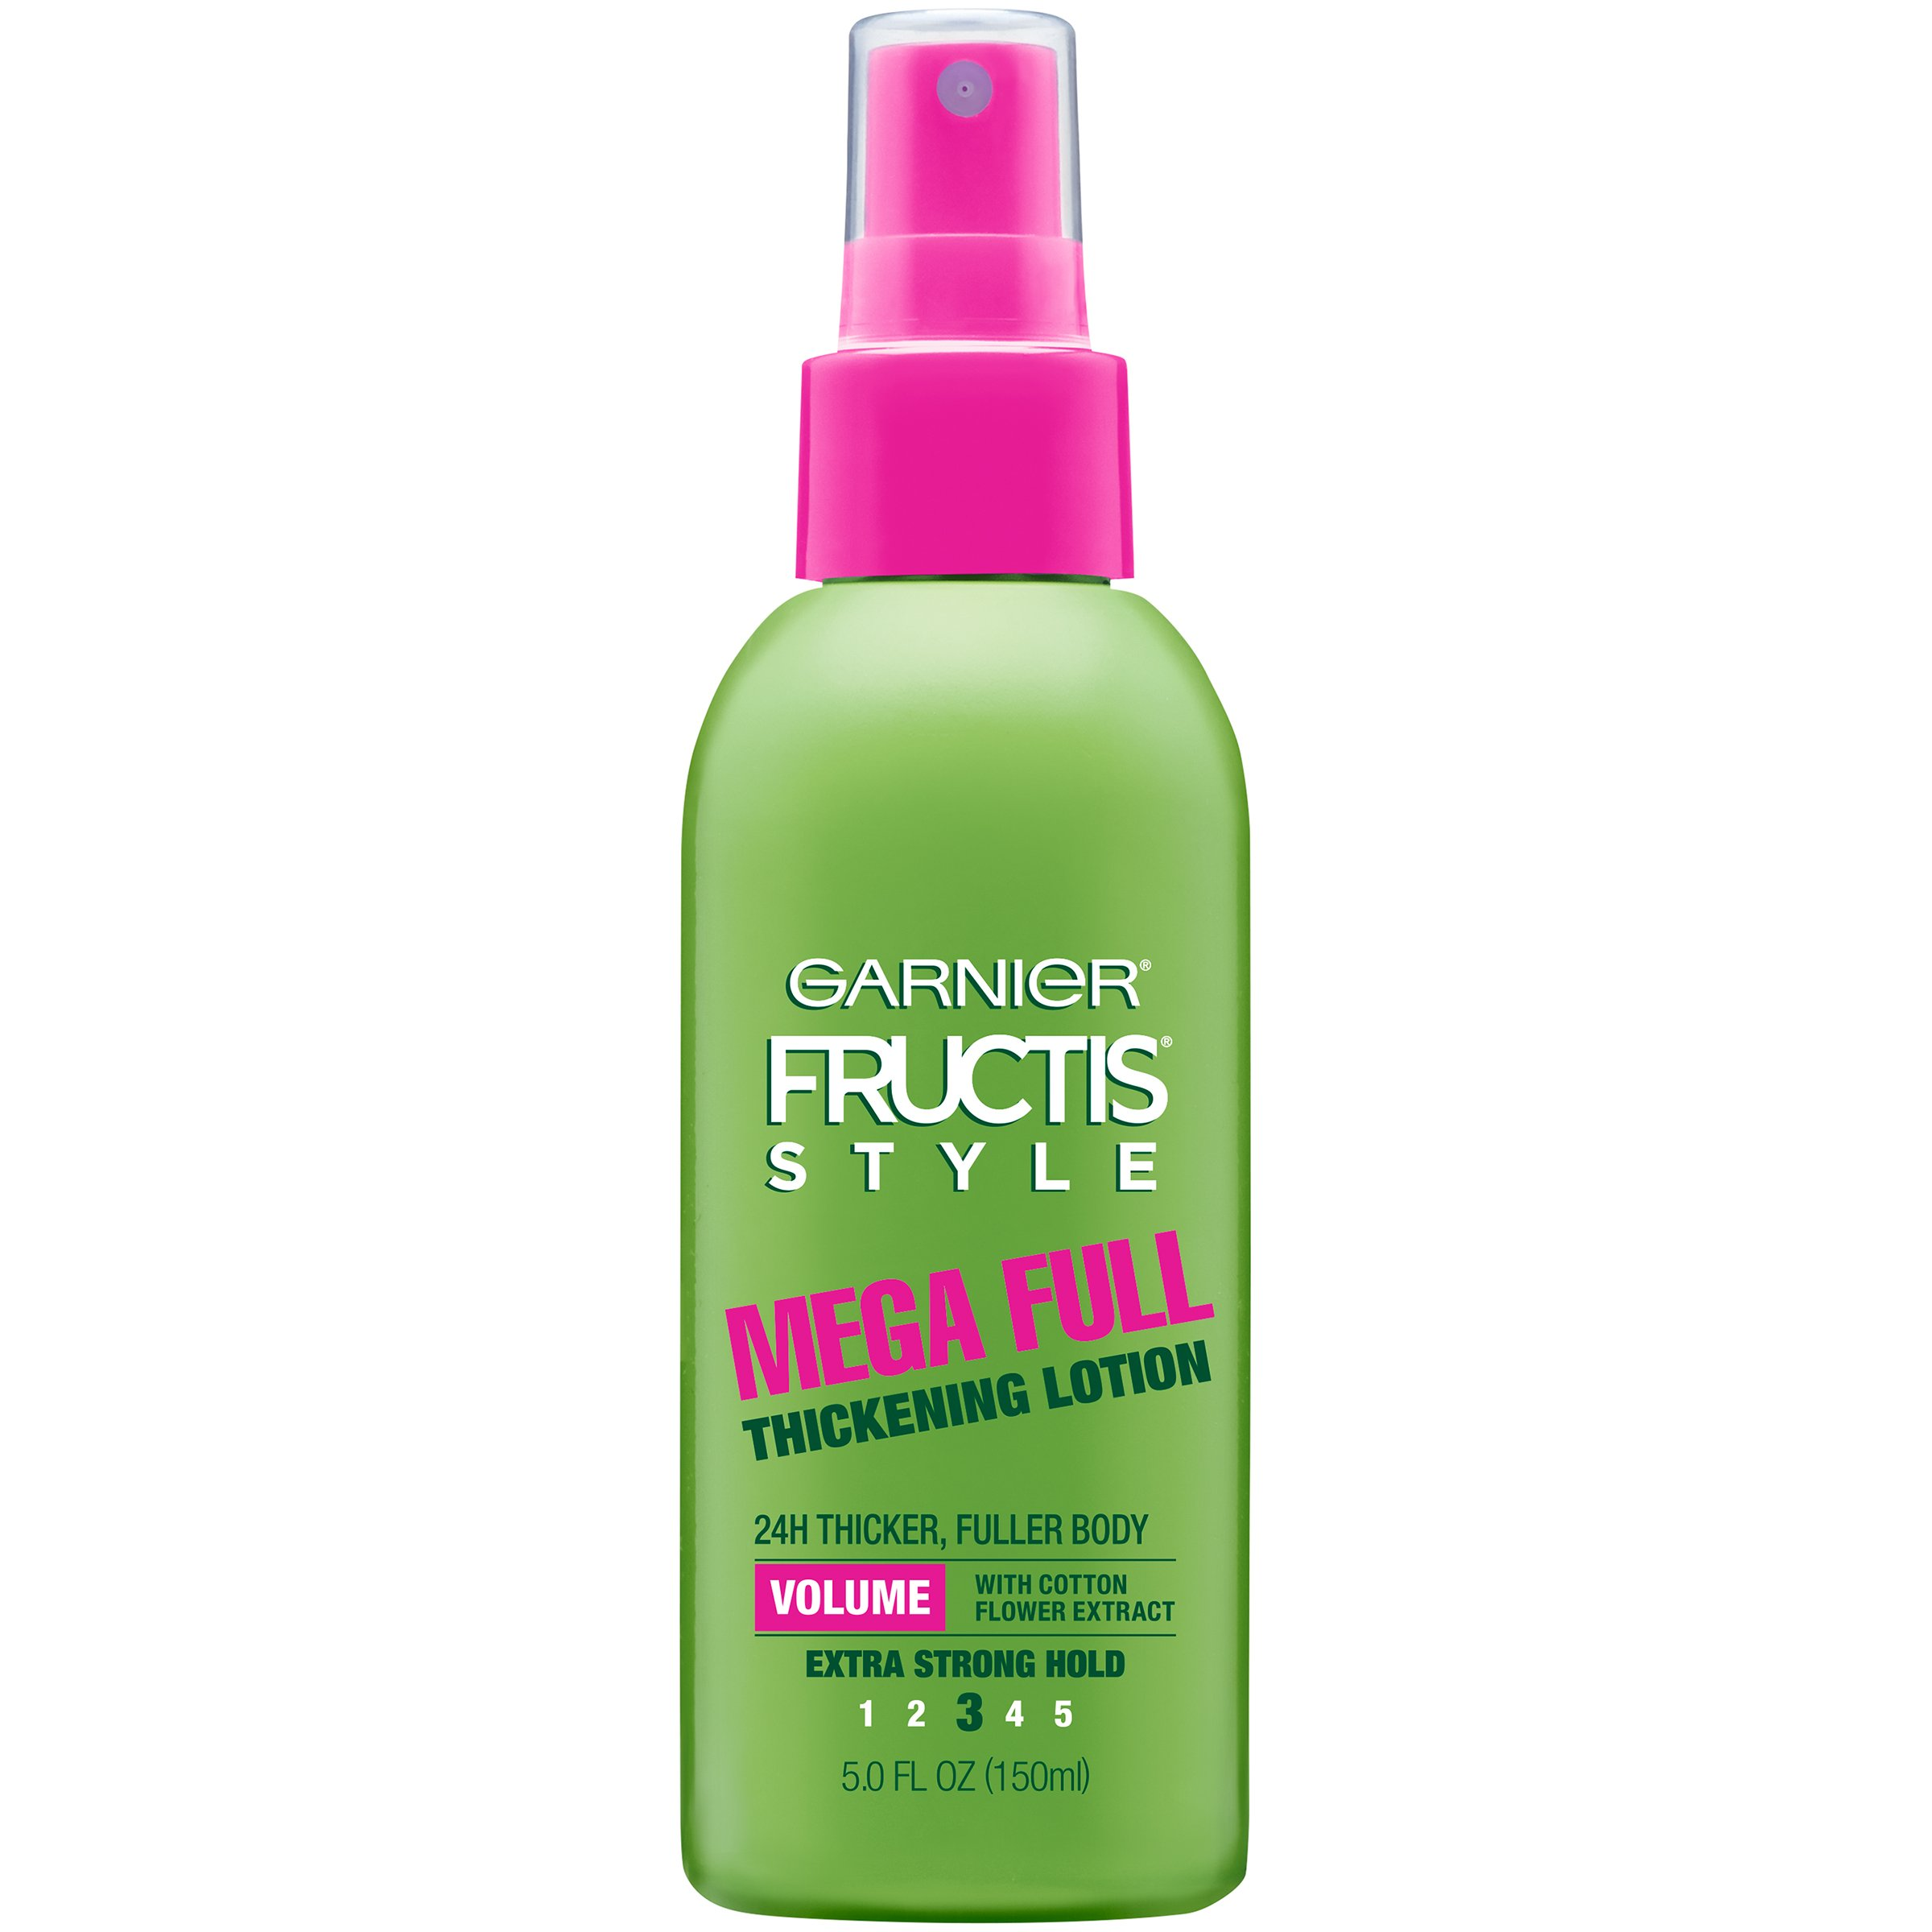 Garnier Fructis Style Mega Full Thickening Lotion, All Hair Types, 5 oz. (Packaging May Vary)